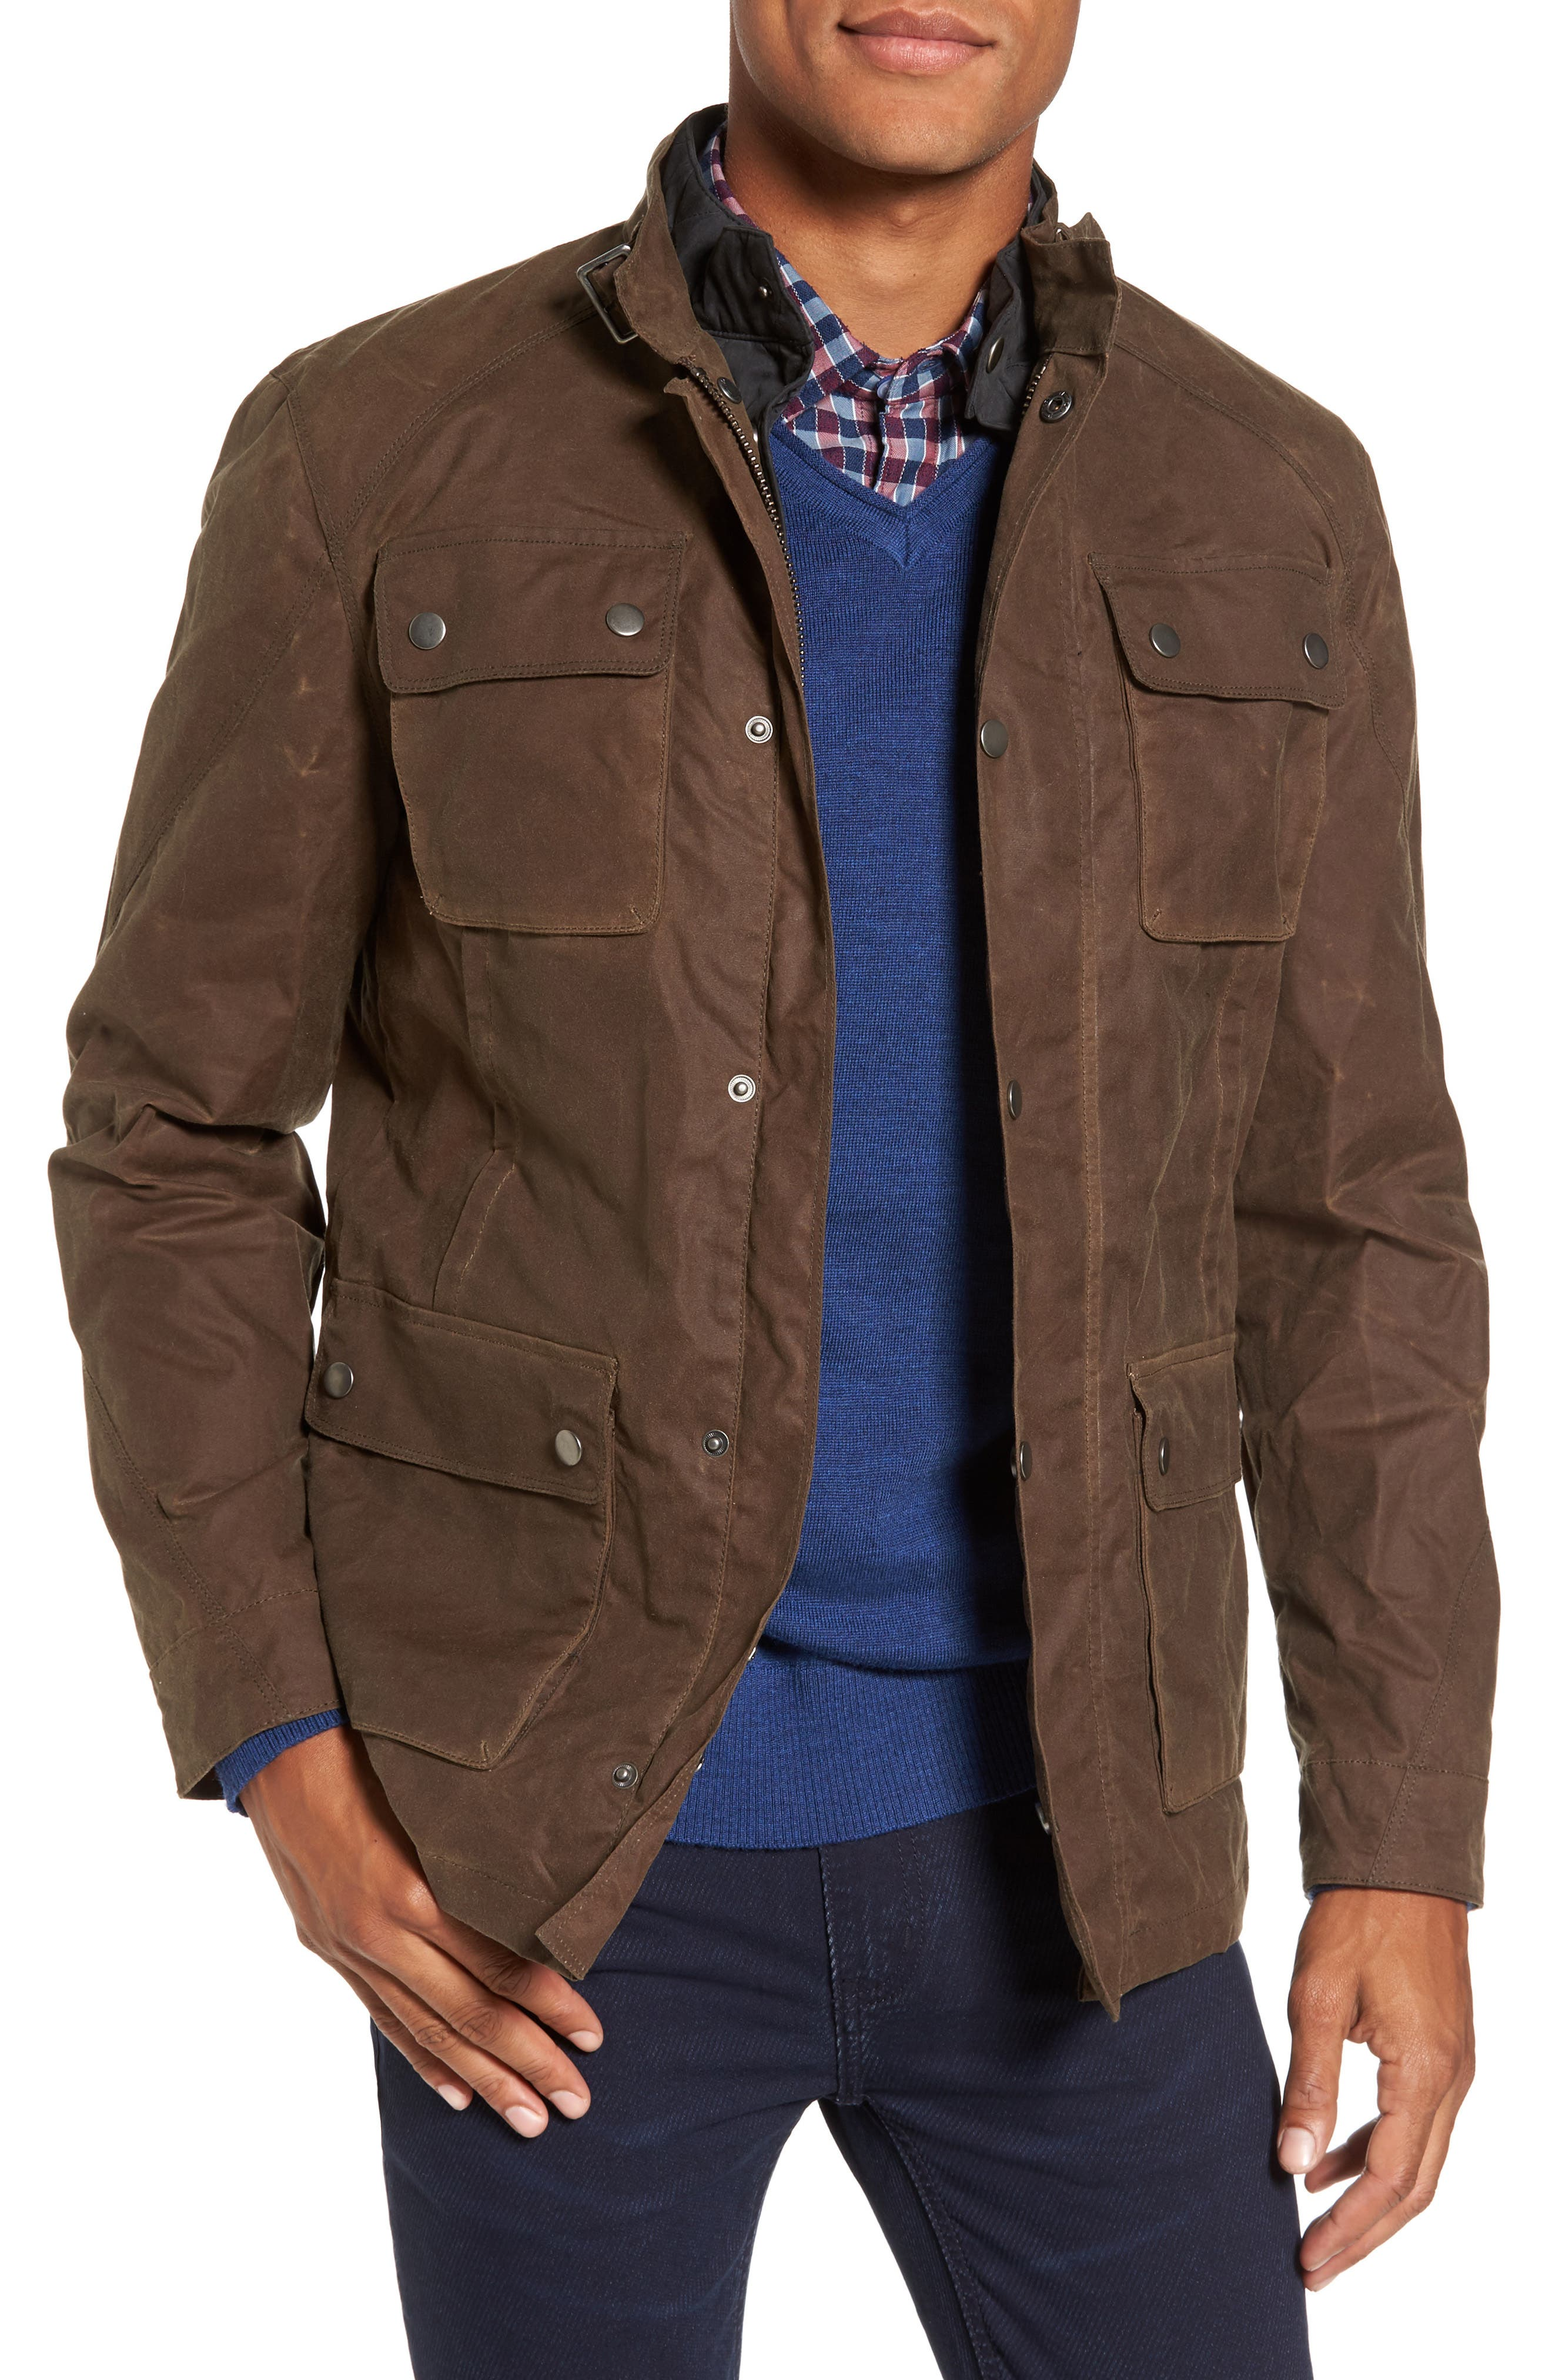 3-in-1 Waxed Cotton Jacket with Removable Vest,                             Main thumbnail 1, color,                             250